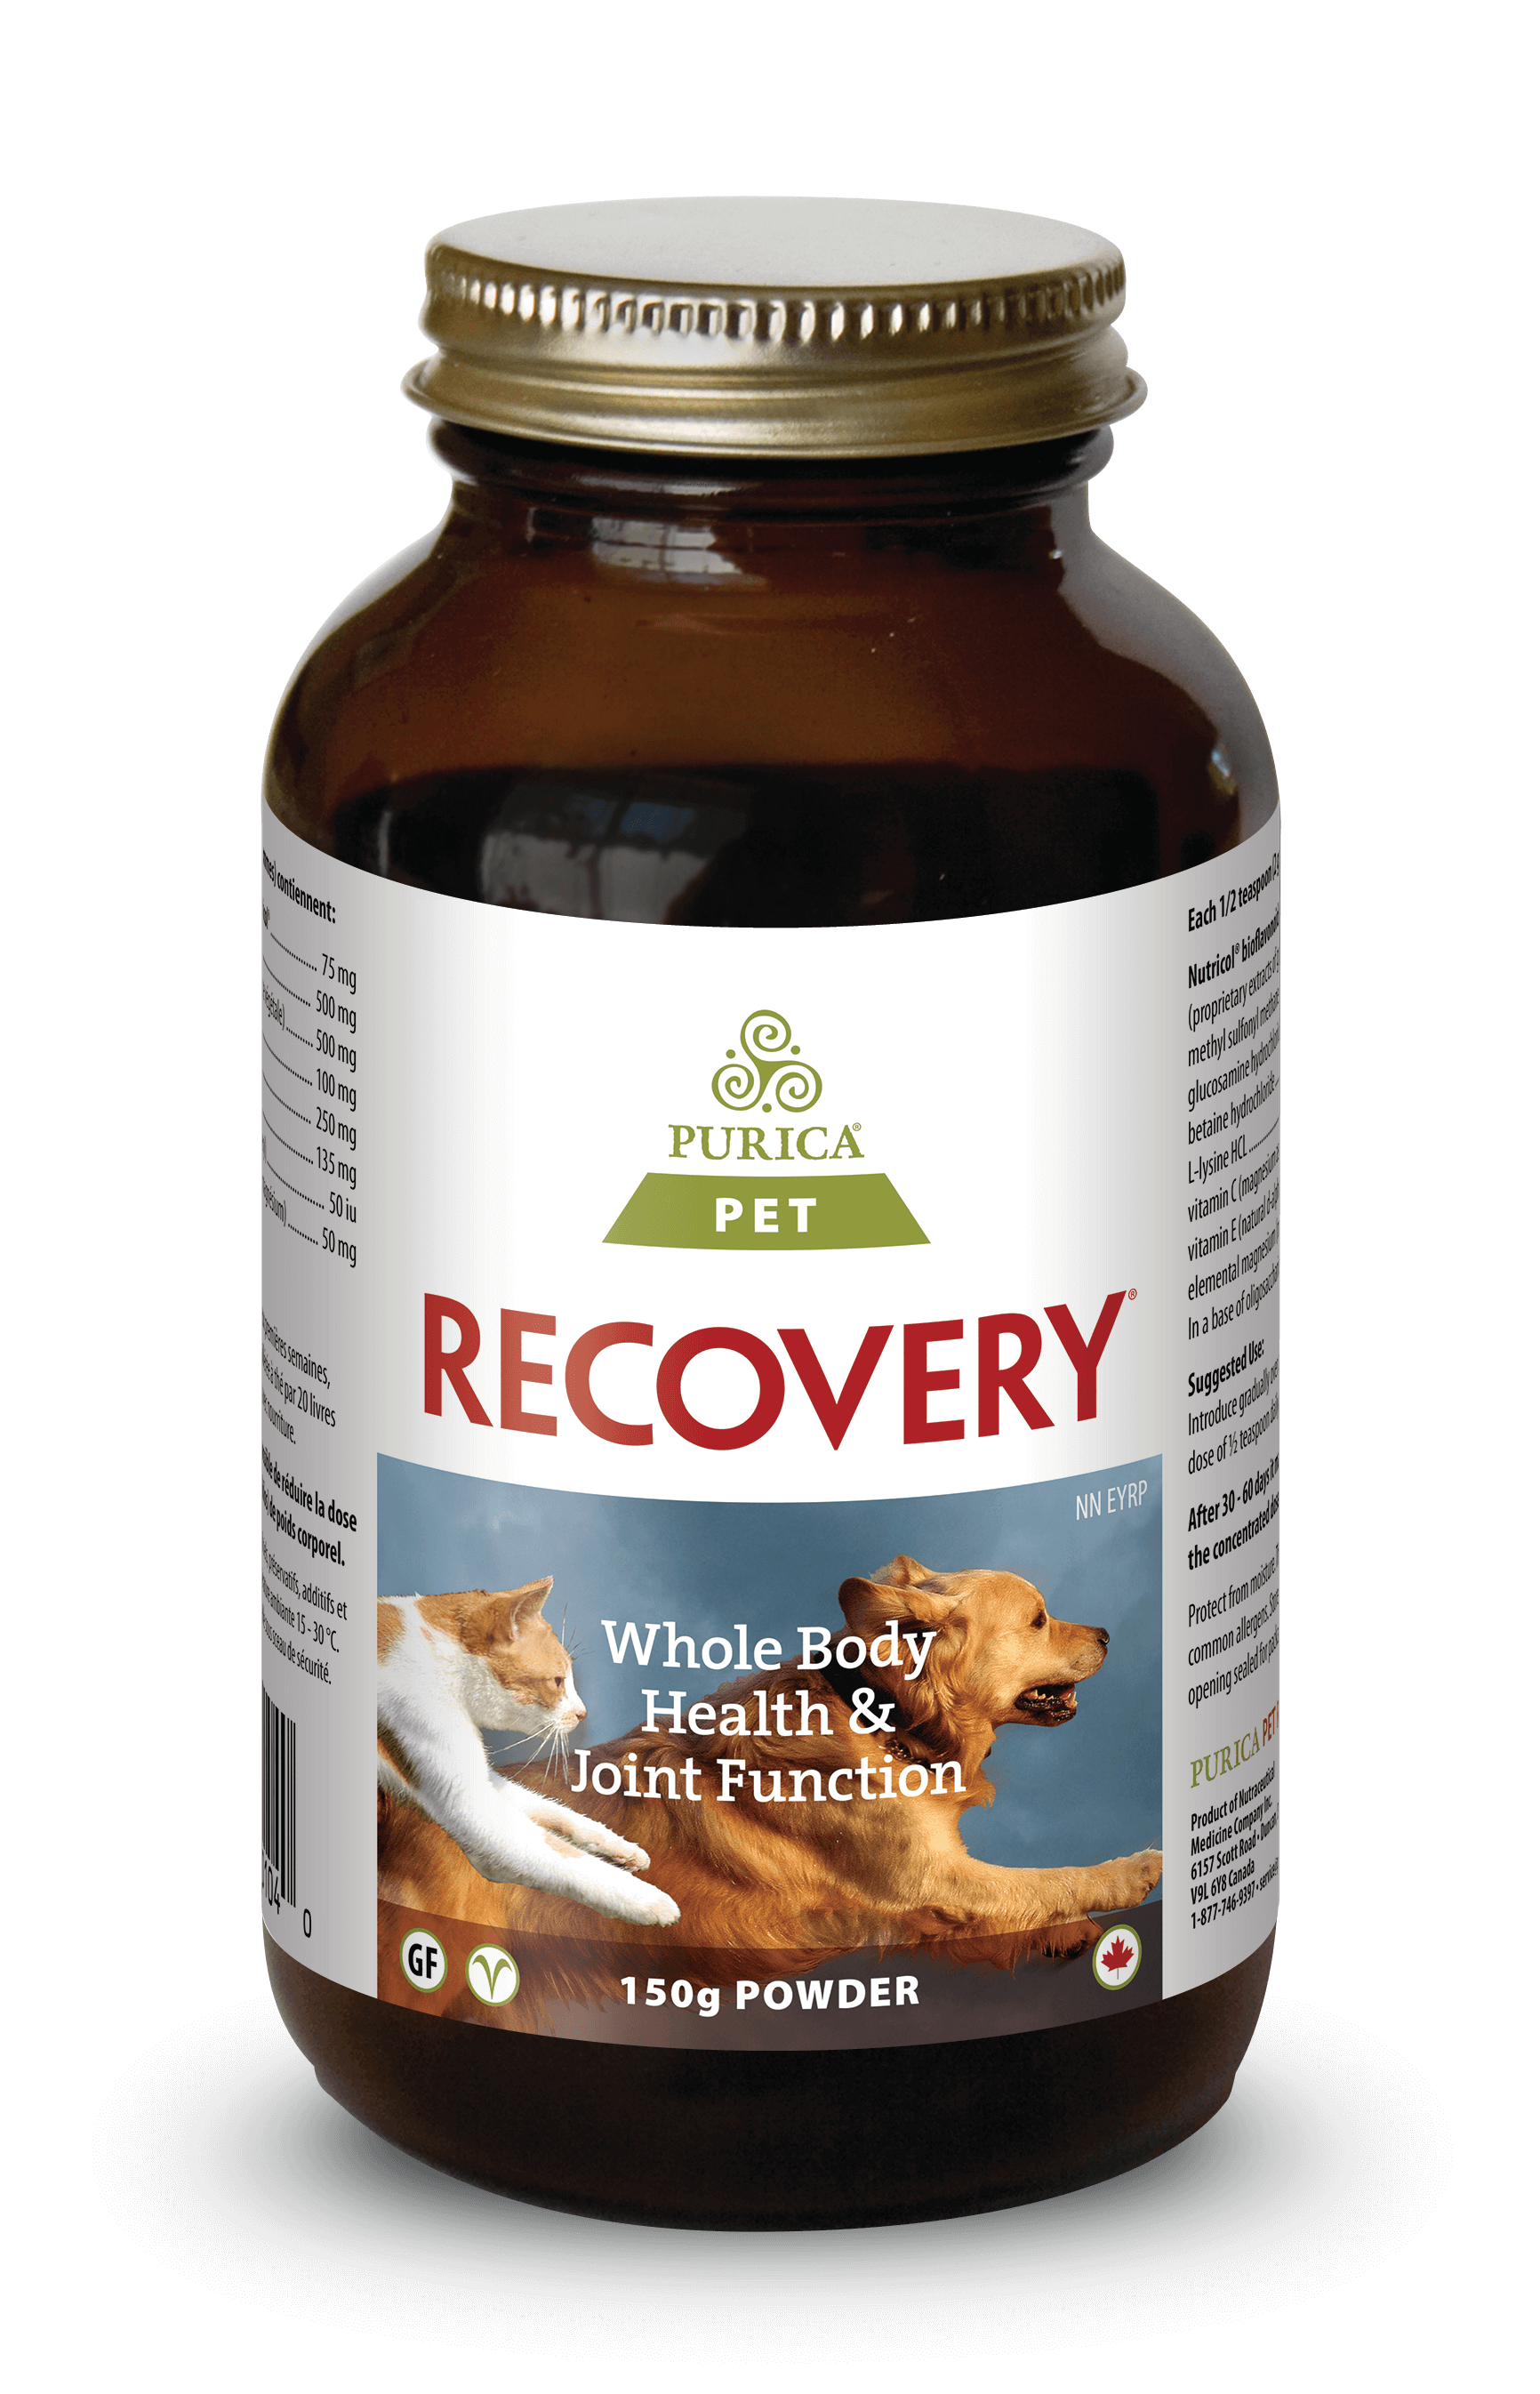 Purica Recovery Powder Dog & Cat Suppliment Image